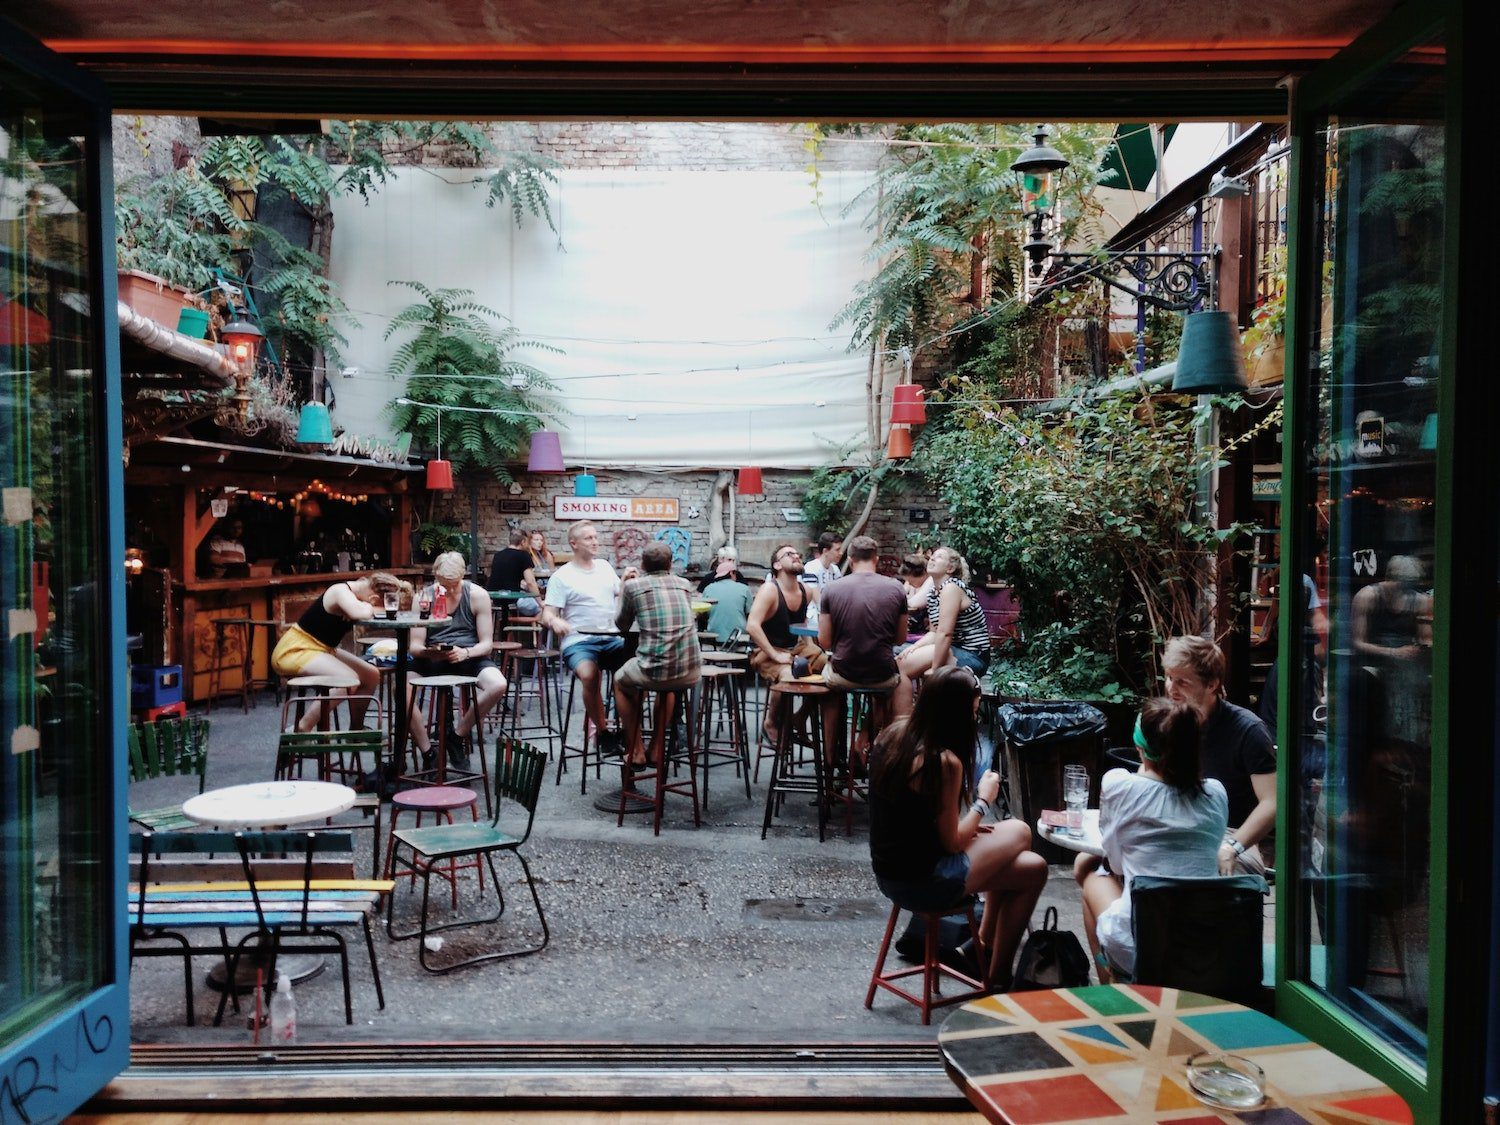 Szimpla Kert is a popular place for backpackers in Budapest